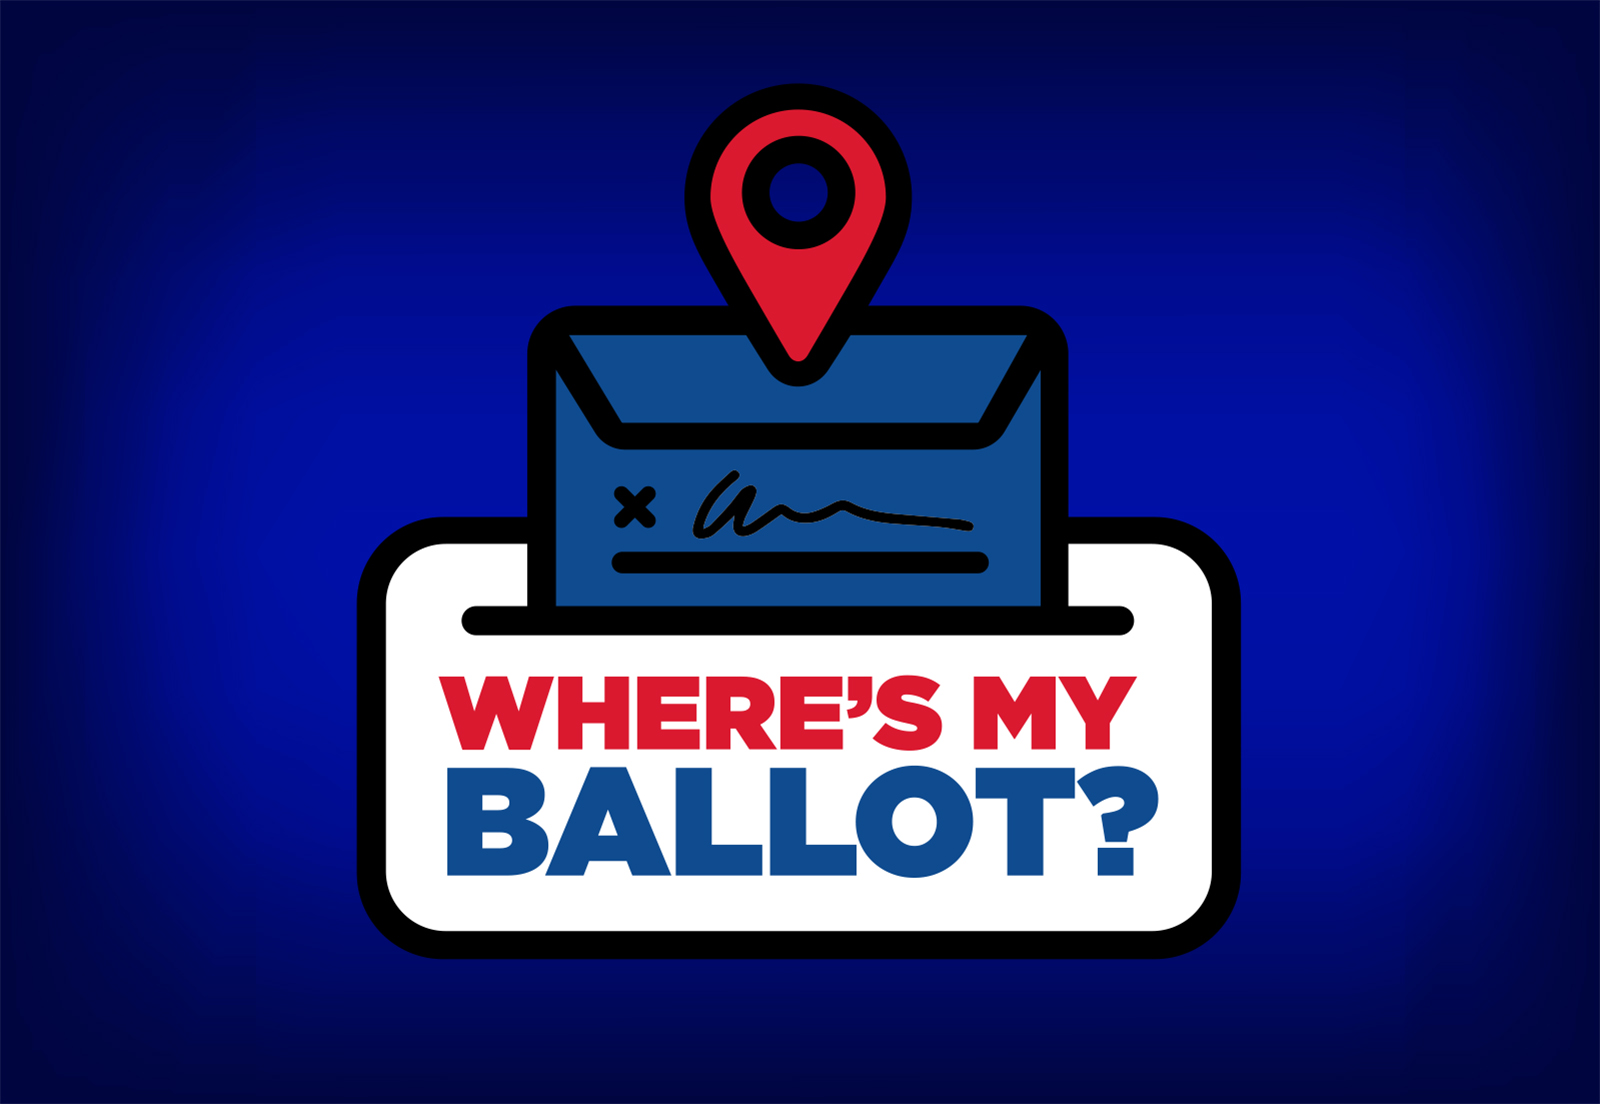 featured image for: <center>COUNTY CLERK HANLON ANNOUNCES THAT MONMOUTH COUNTY'S BALLOT TRACKING SYSTEM (BALLOTTRAX) IS AVAILABLE TO MAIL-IN VOTERS AGAIN THIS GENERAL ELECTION